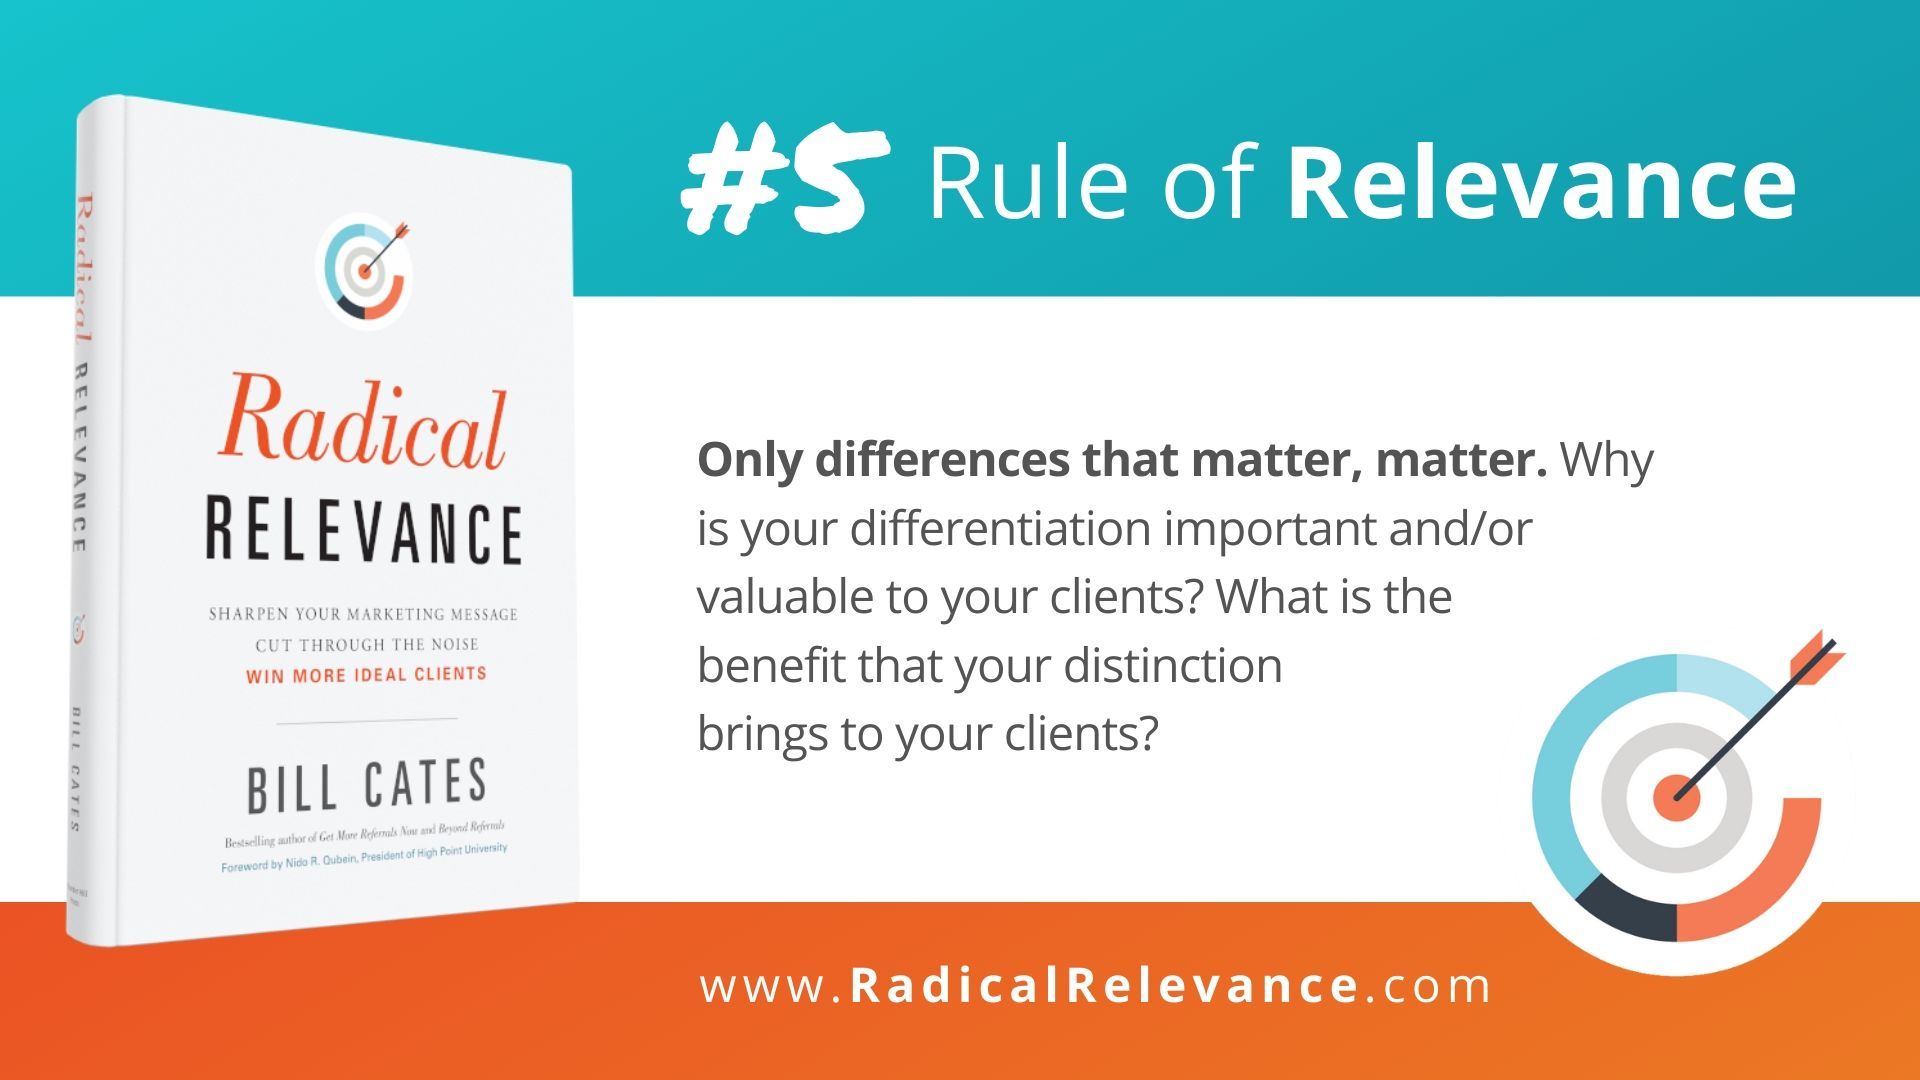 Rules of Relevance #5: Only differences that matter, matter.